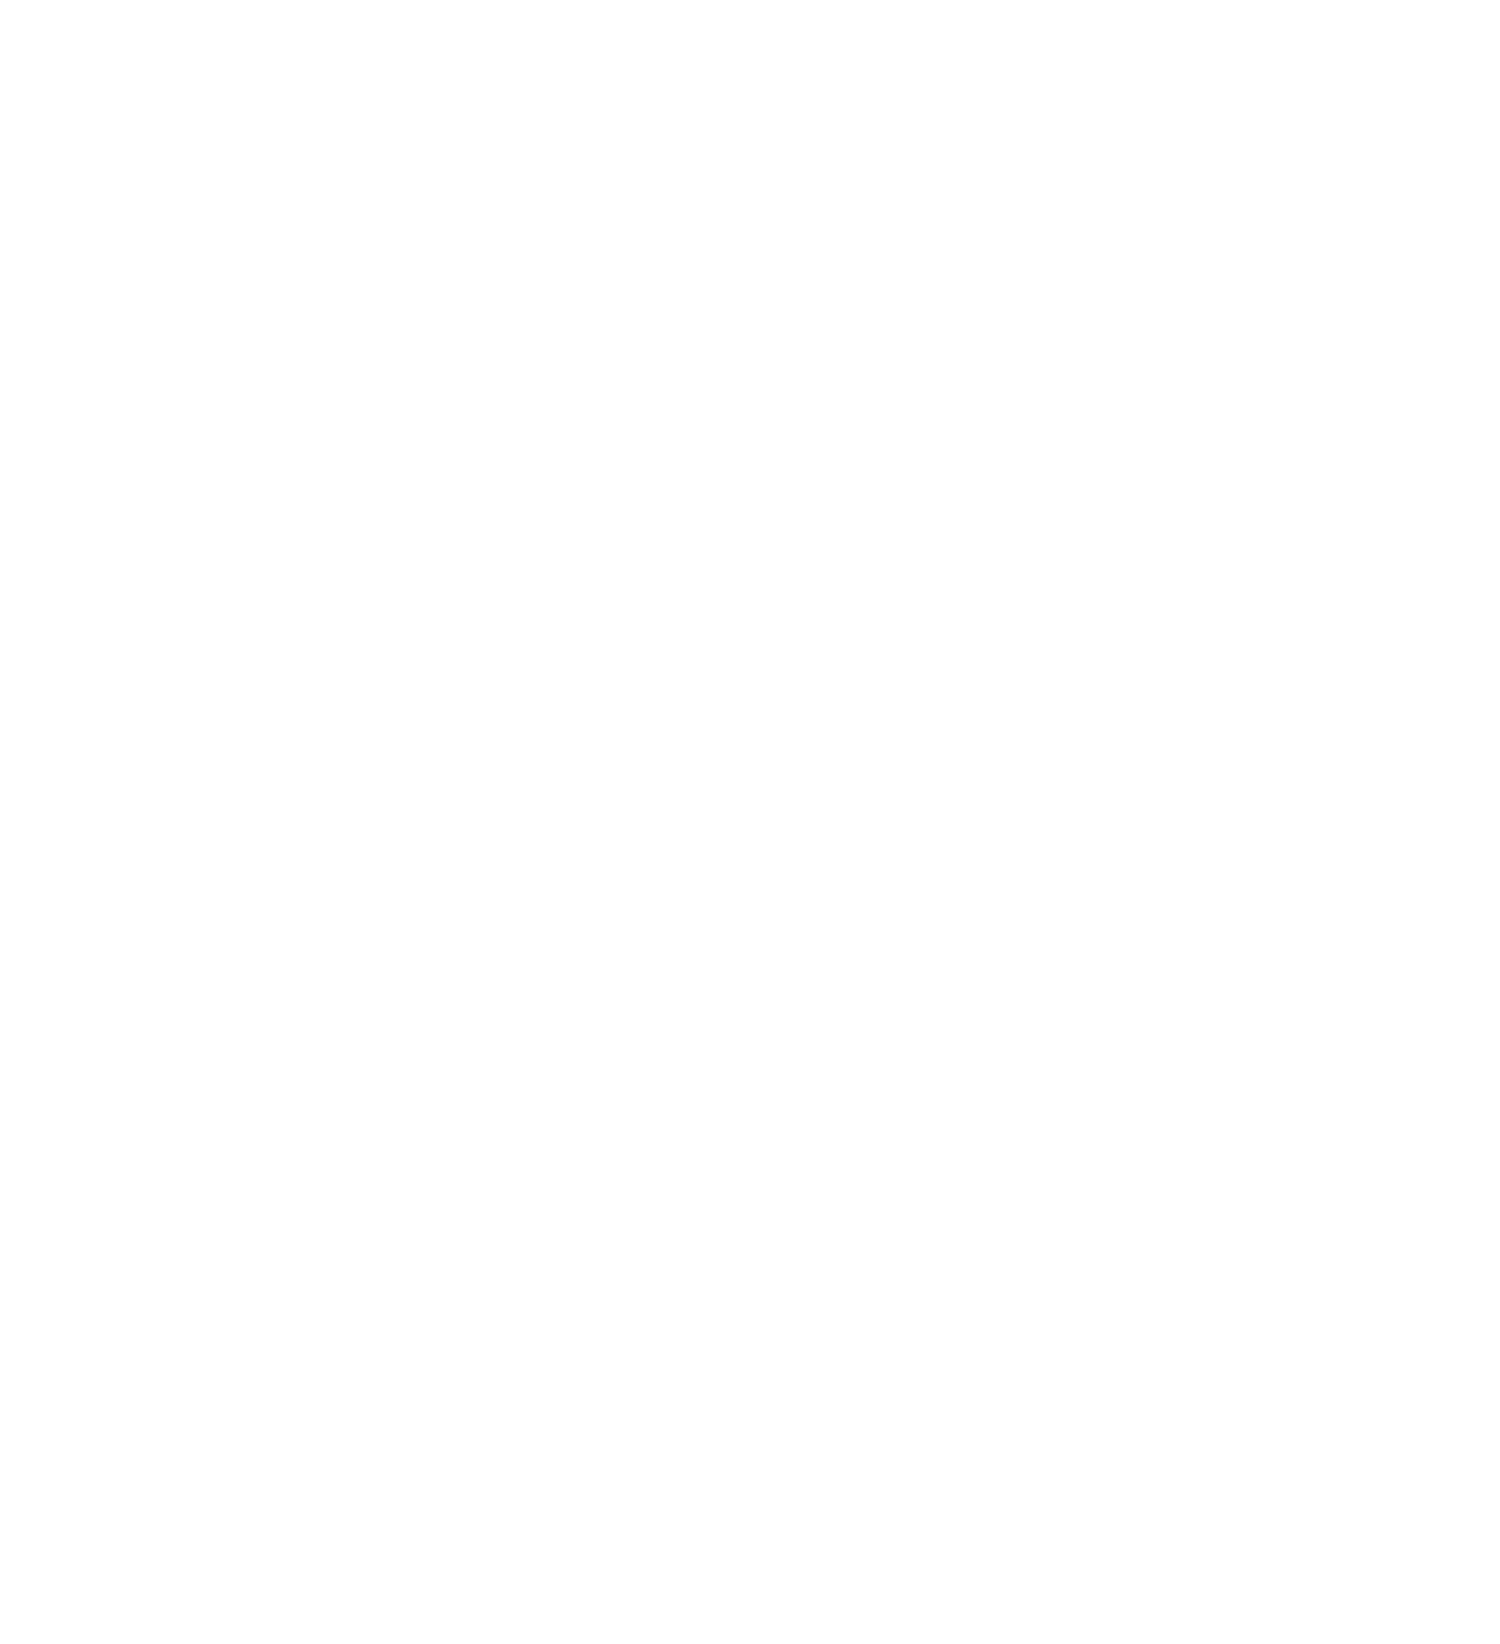 Diana Christine Photography